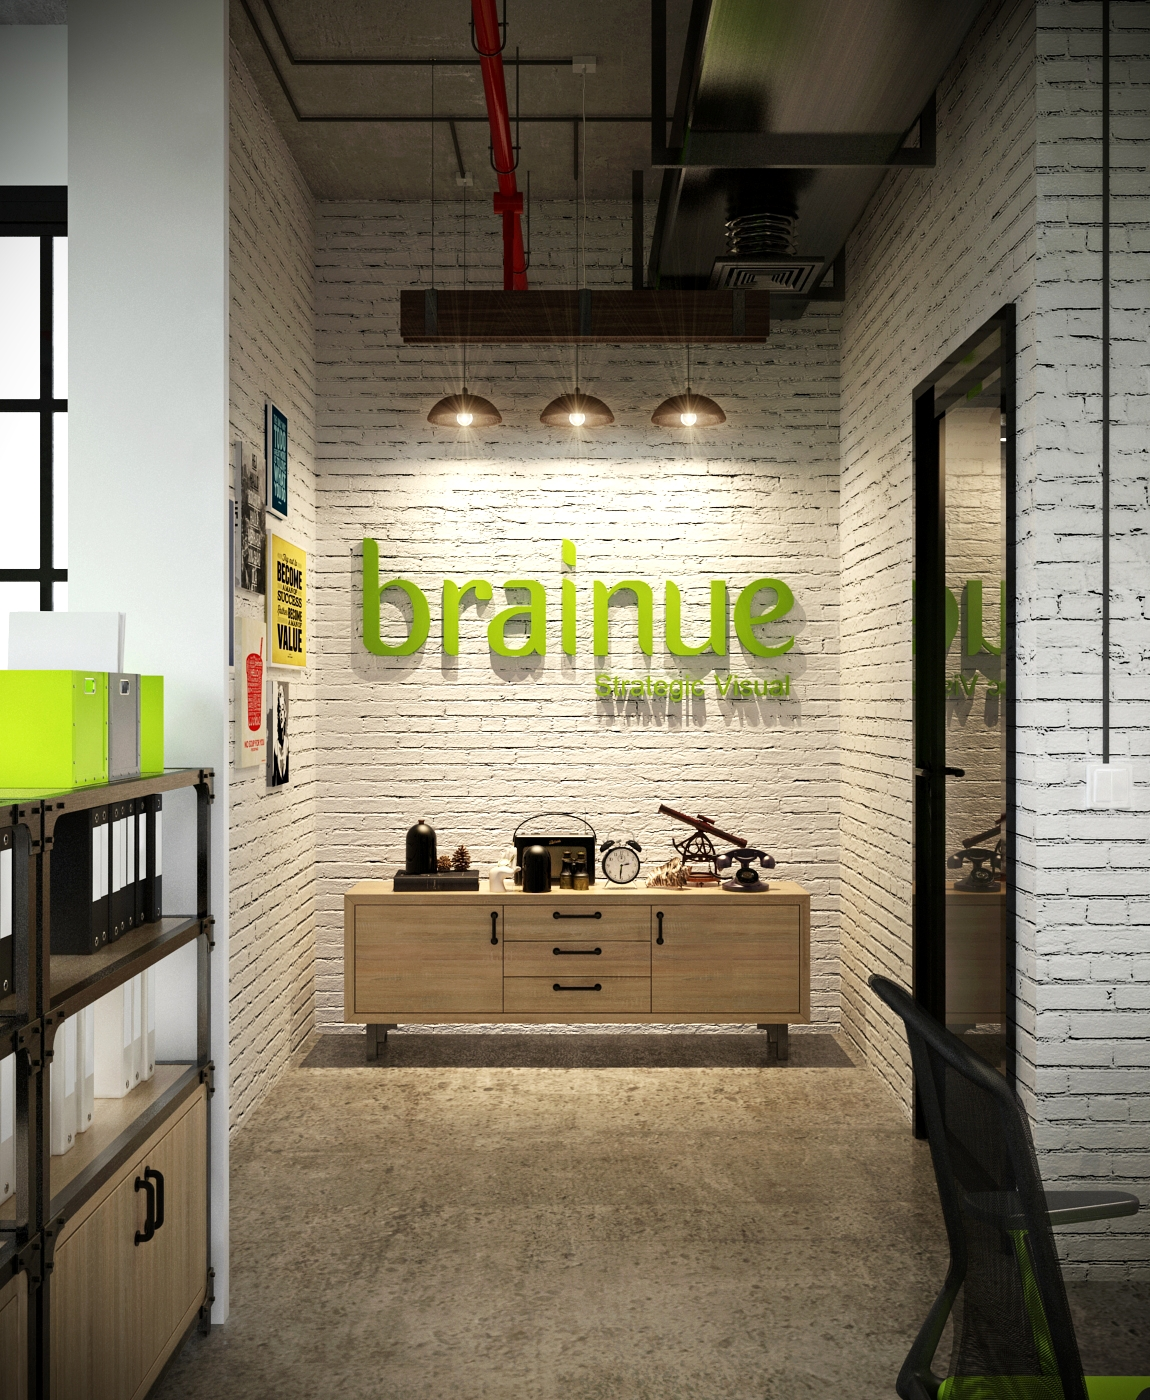 Brainue 01 copy